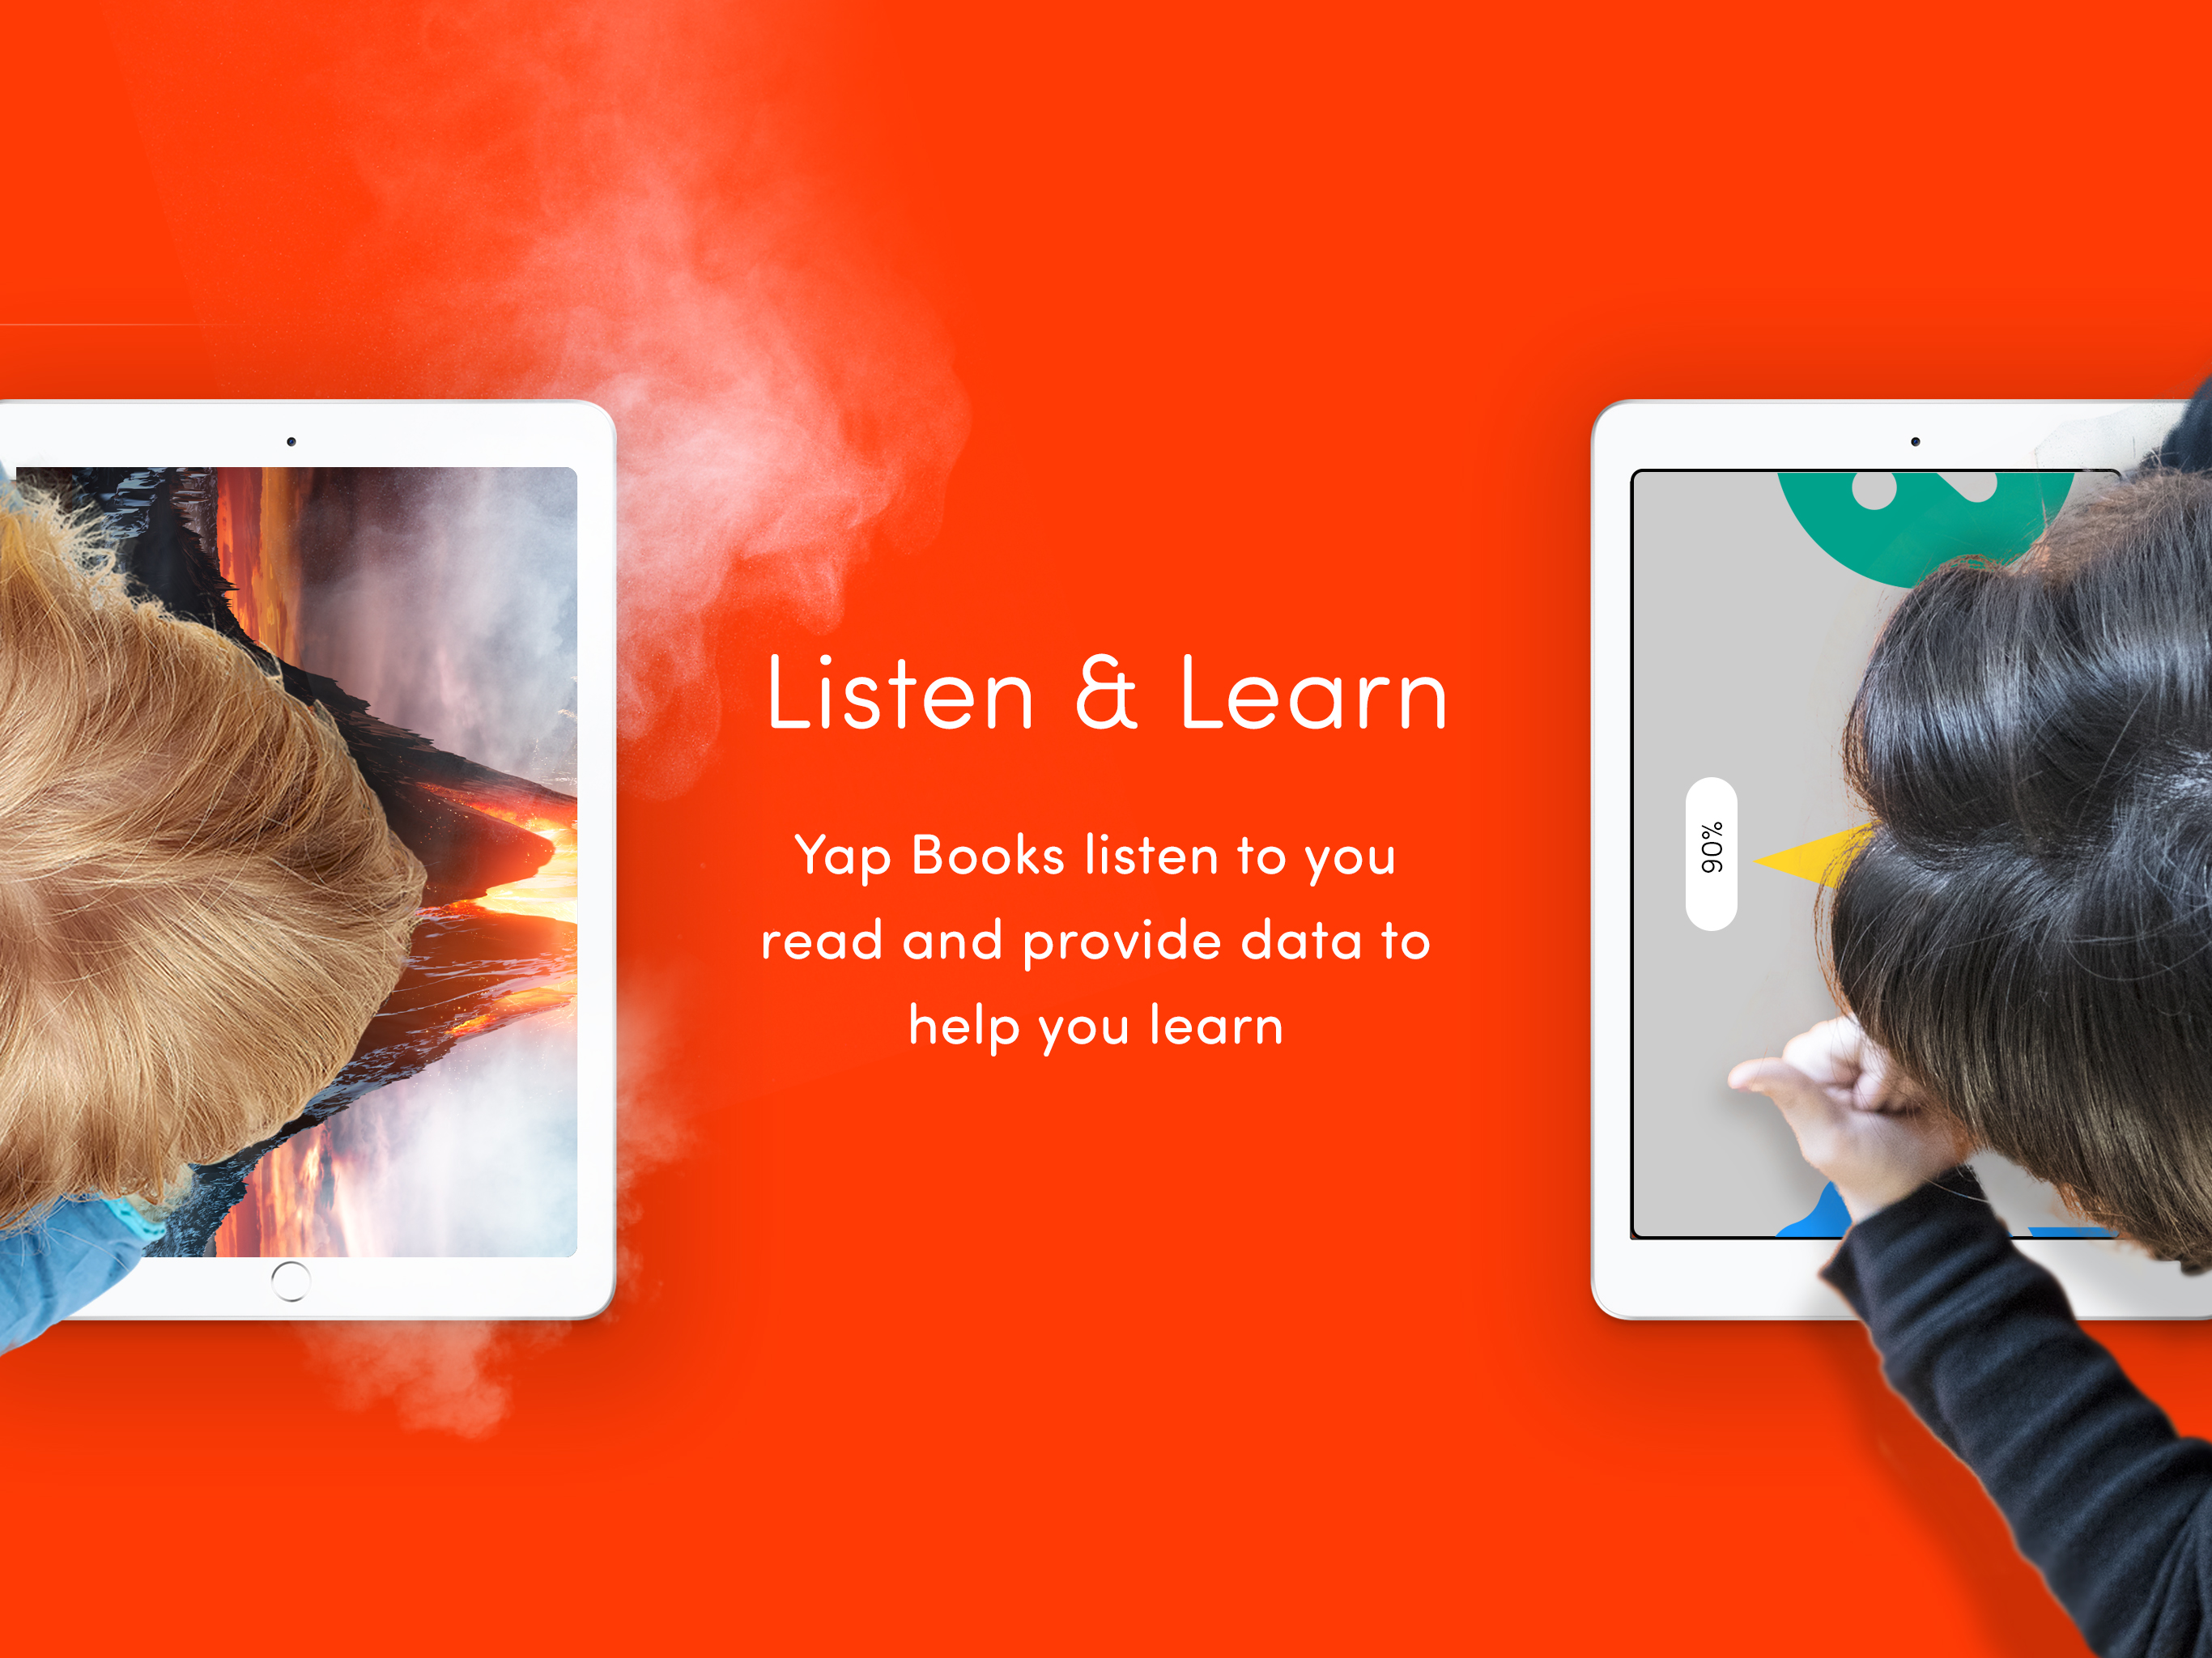 Using voice technology to capture reading analysis to make learning much smarter